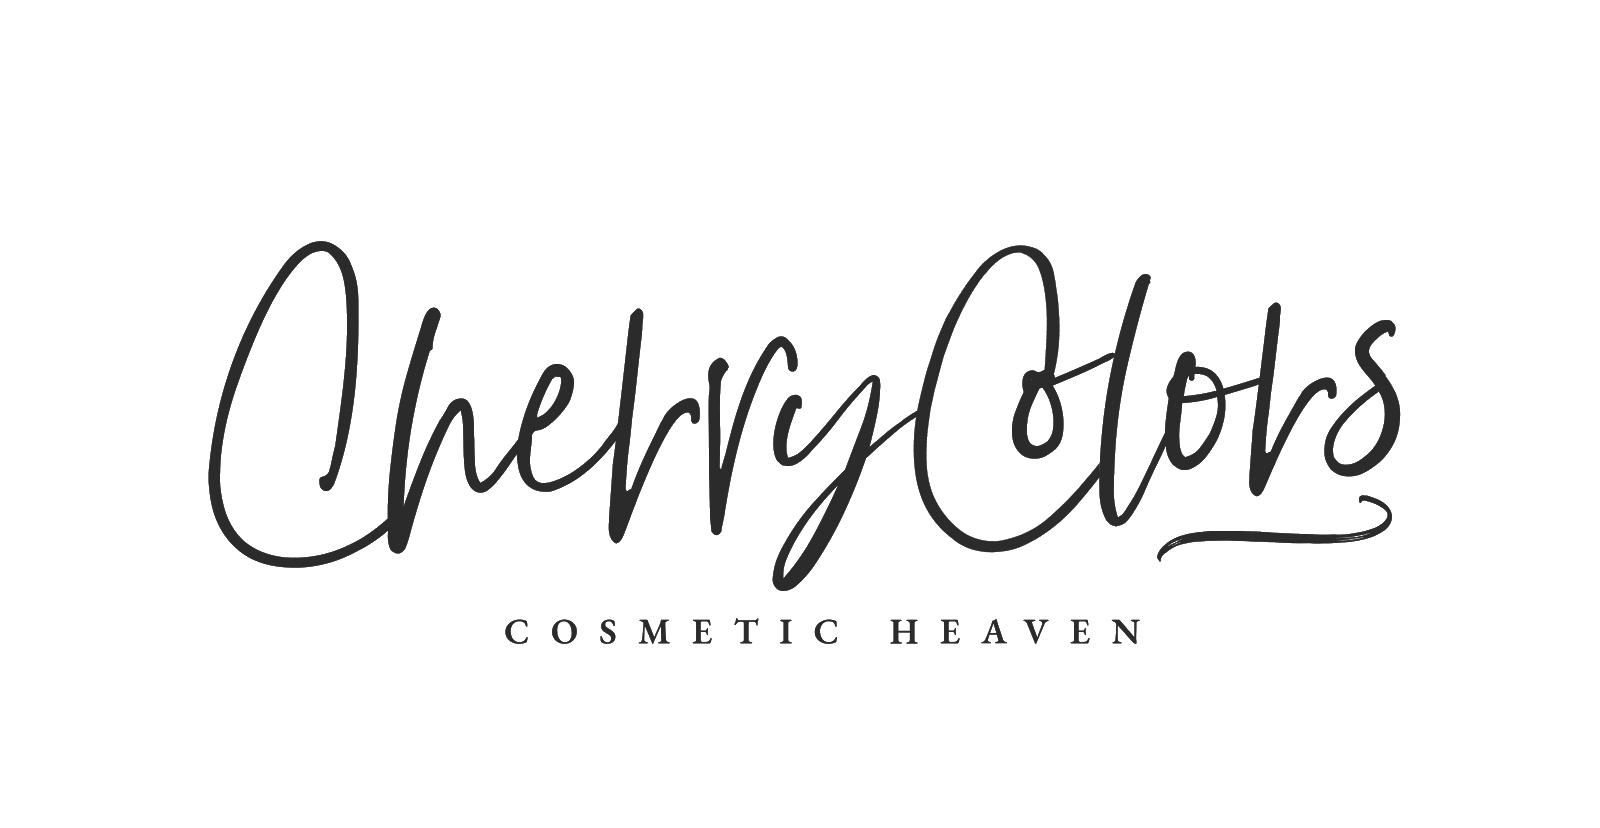 Cherry Colors - Cosmetics Heaven!